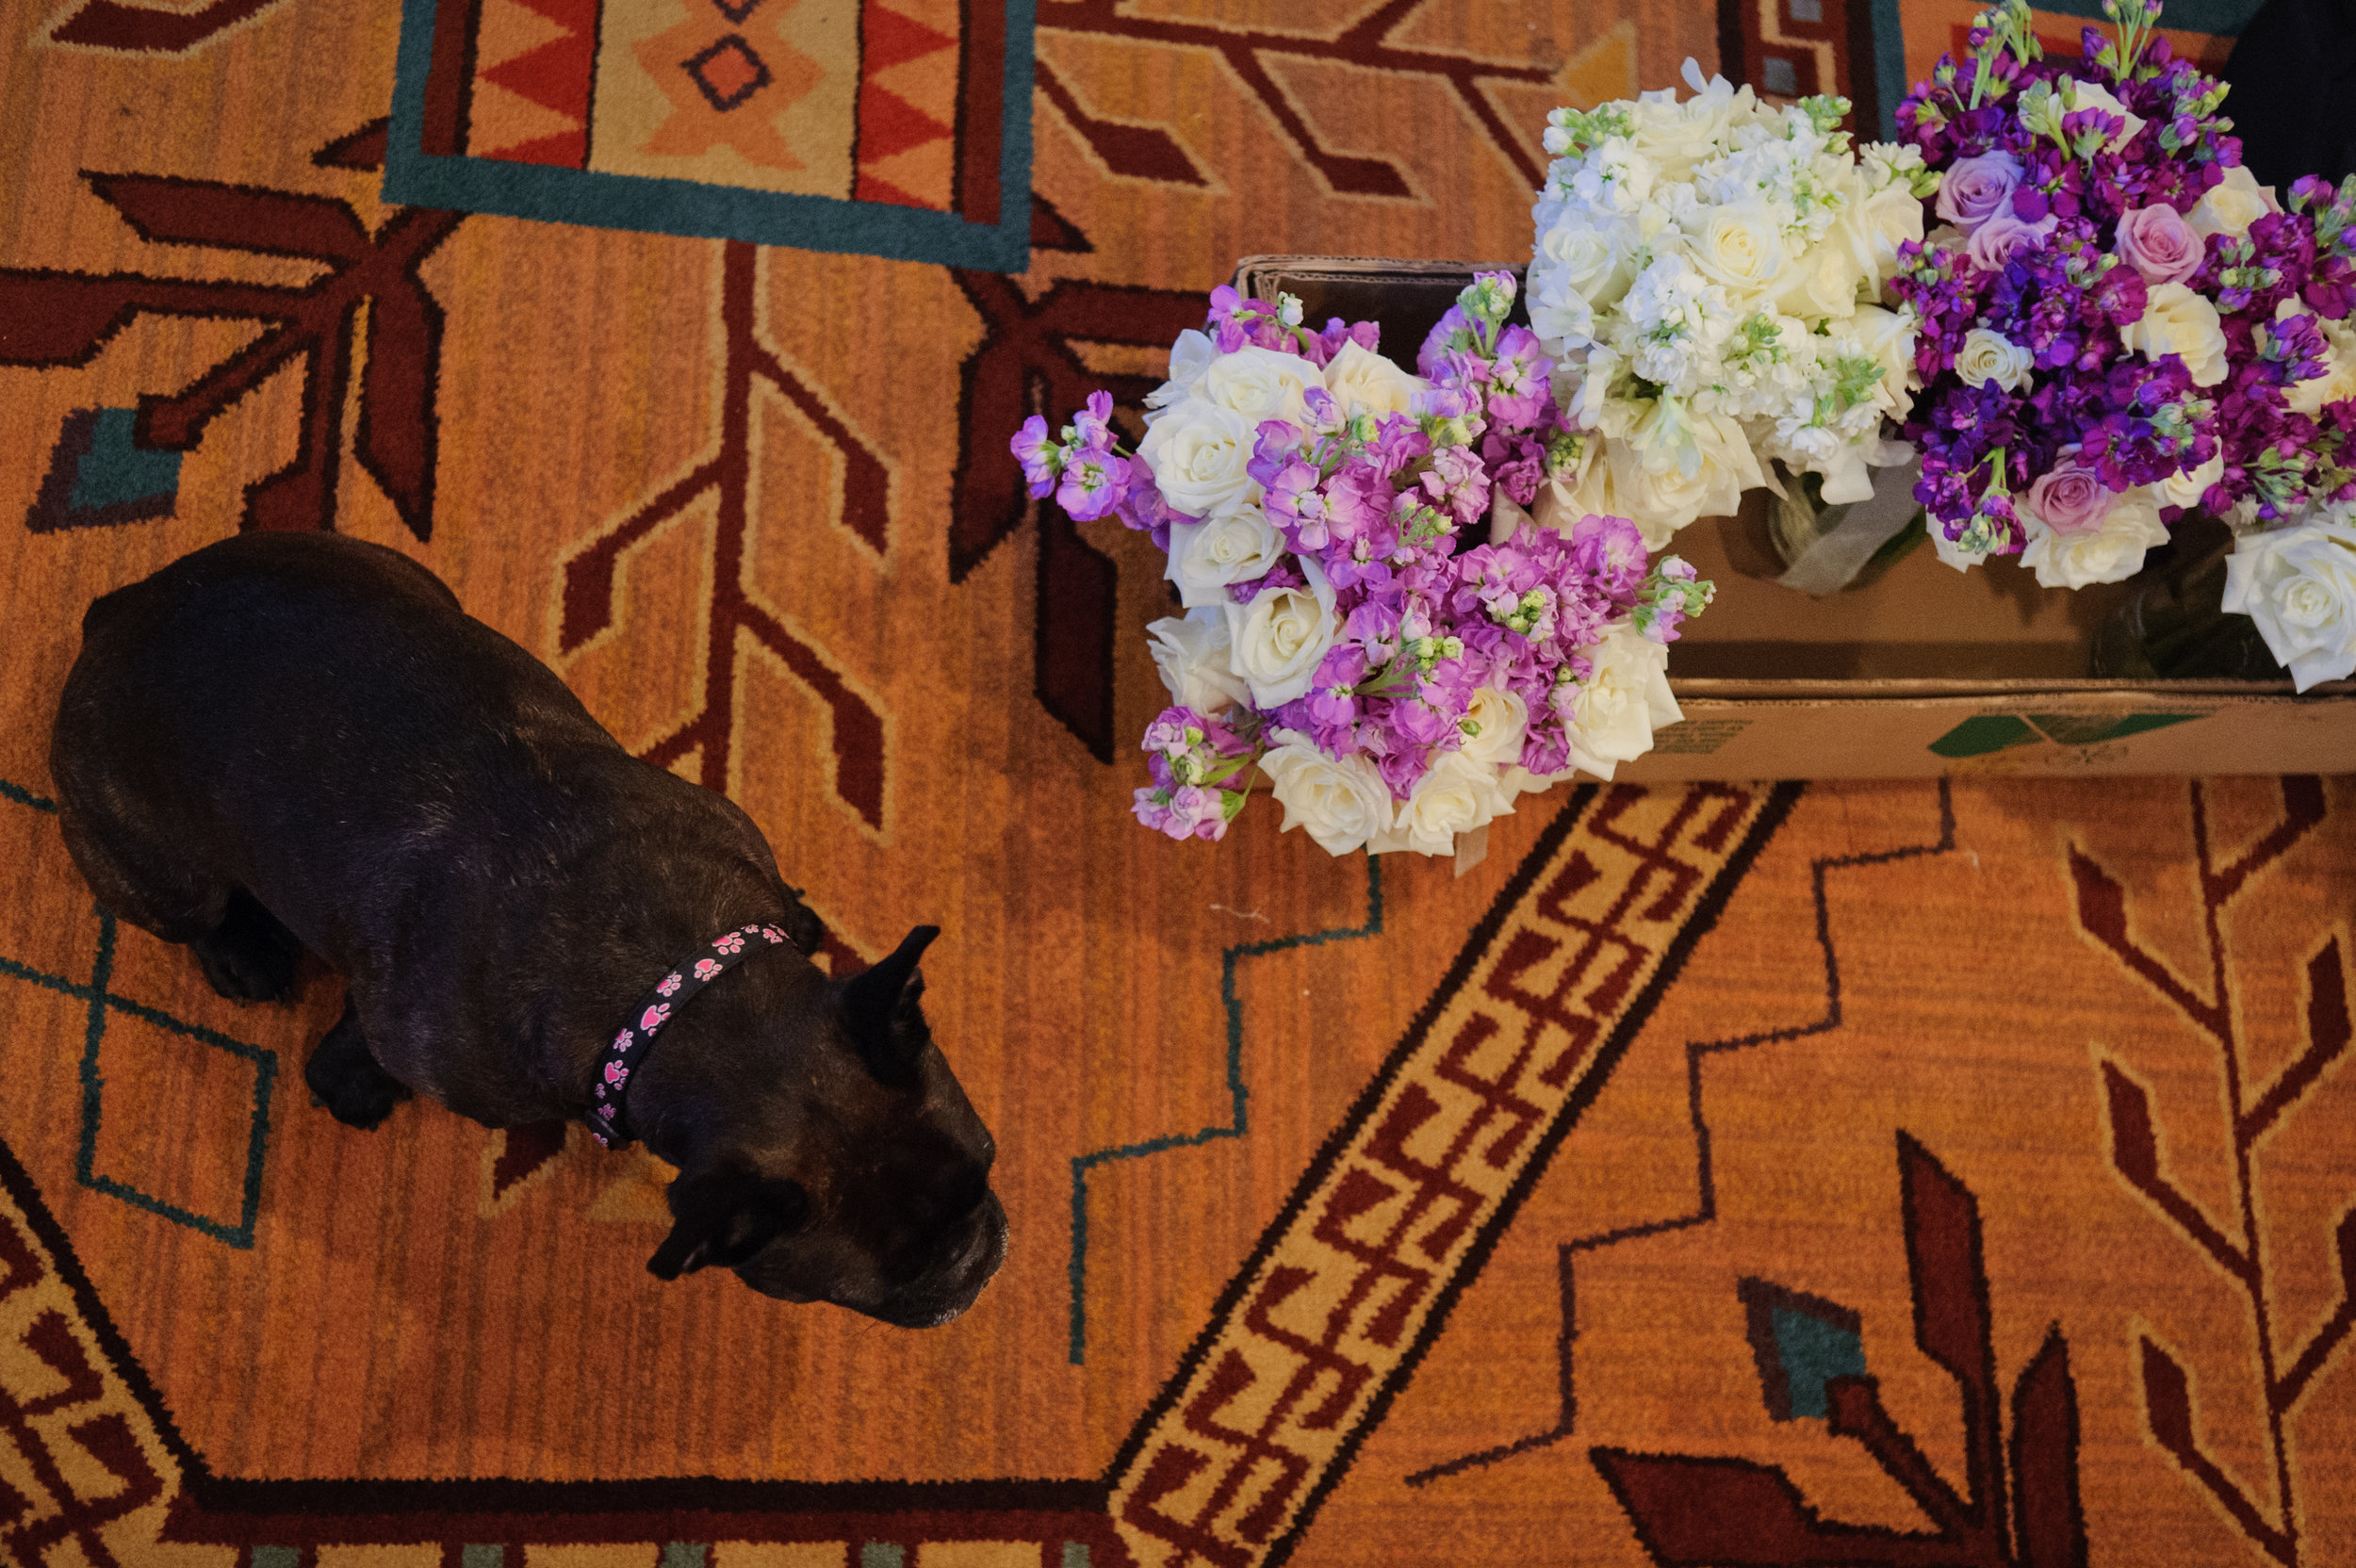 2 puppy at wedding puppy with flowers at wedding purple and white bouquets Sergio Photography Life Design Events.JPG